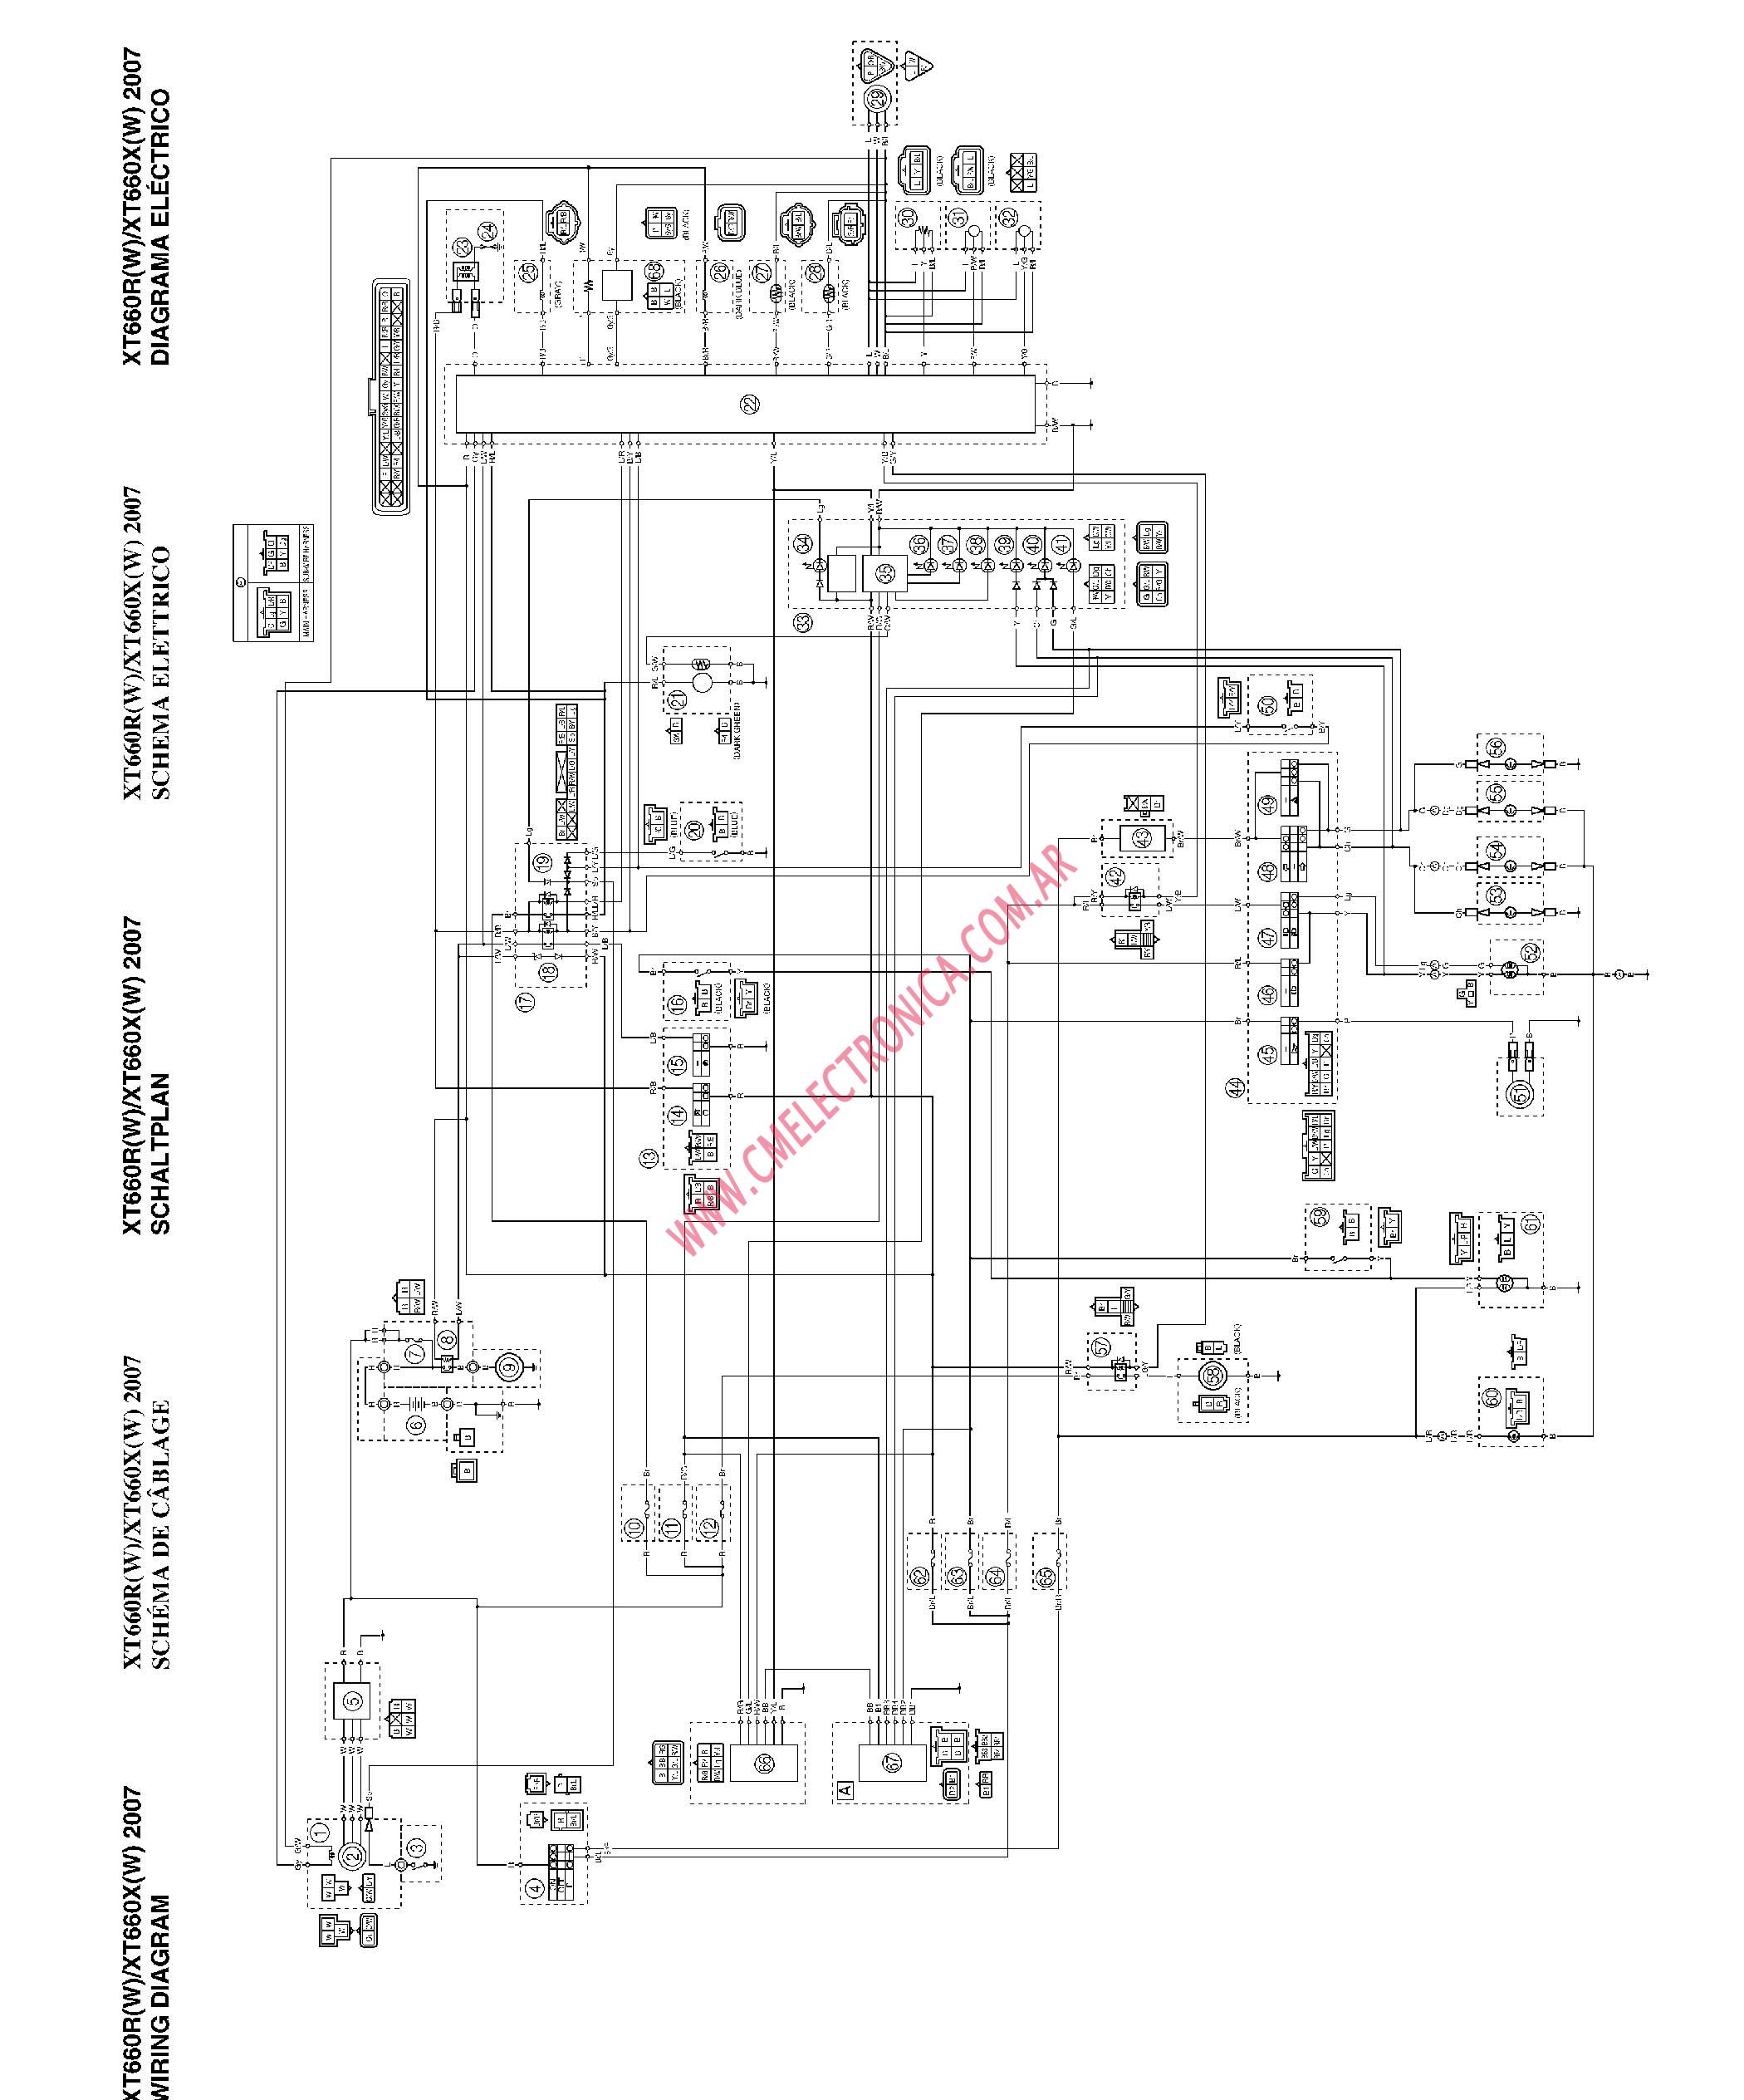 120 Watt Raptor Wiring Diagram : 30 Wiring Diagram Images